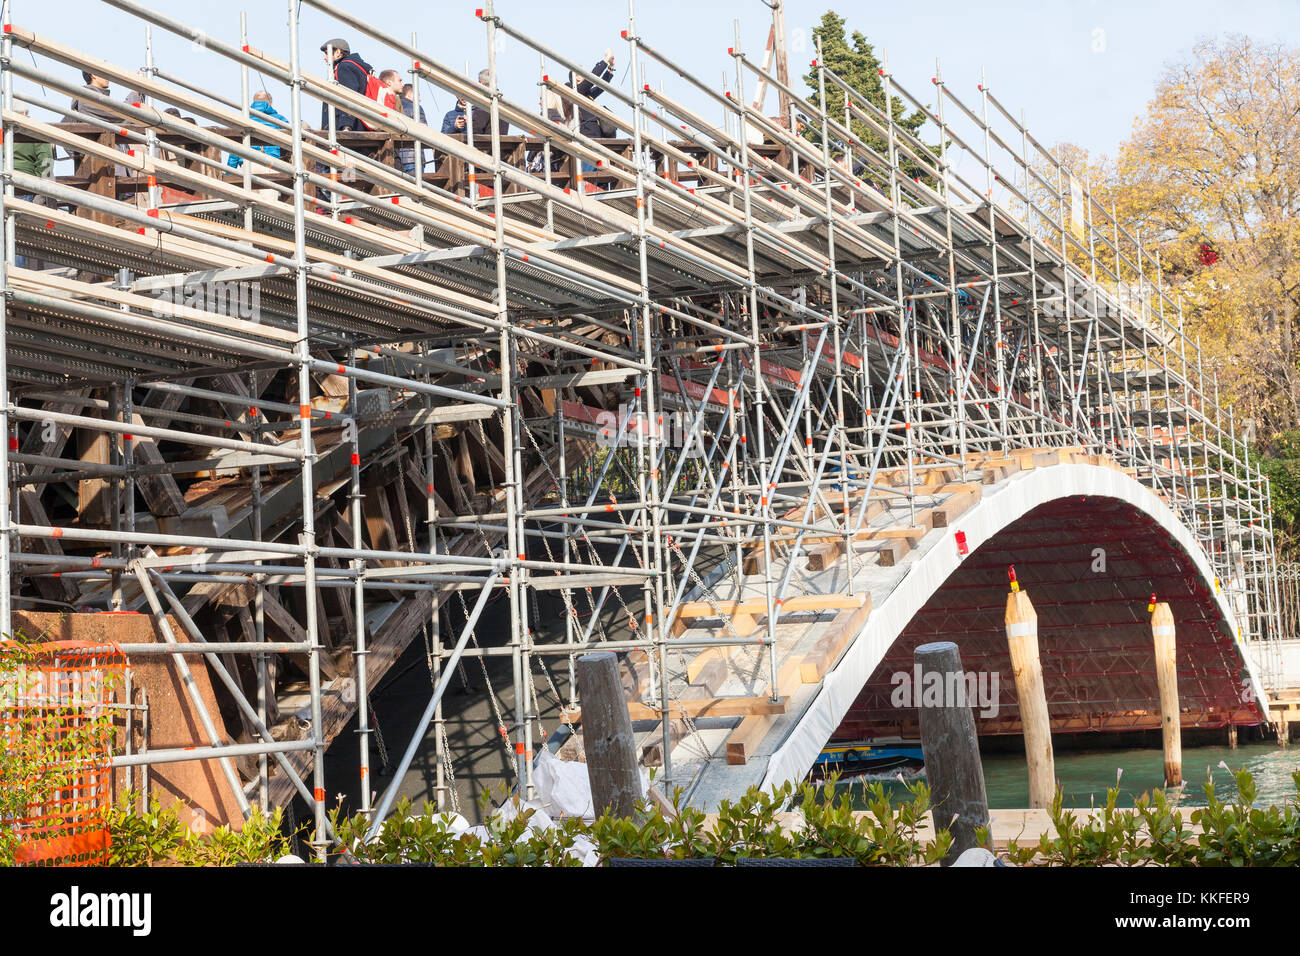 Accademia Bridge covered in scaffolding, Grand Canal, Venice, Italy during renovations funded by Luxottica - Stock Image